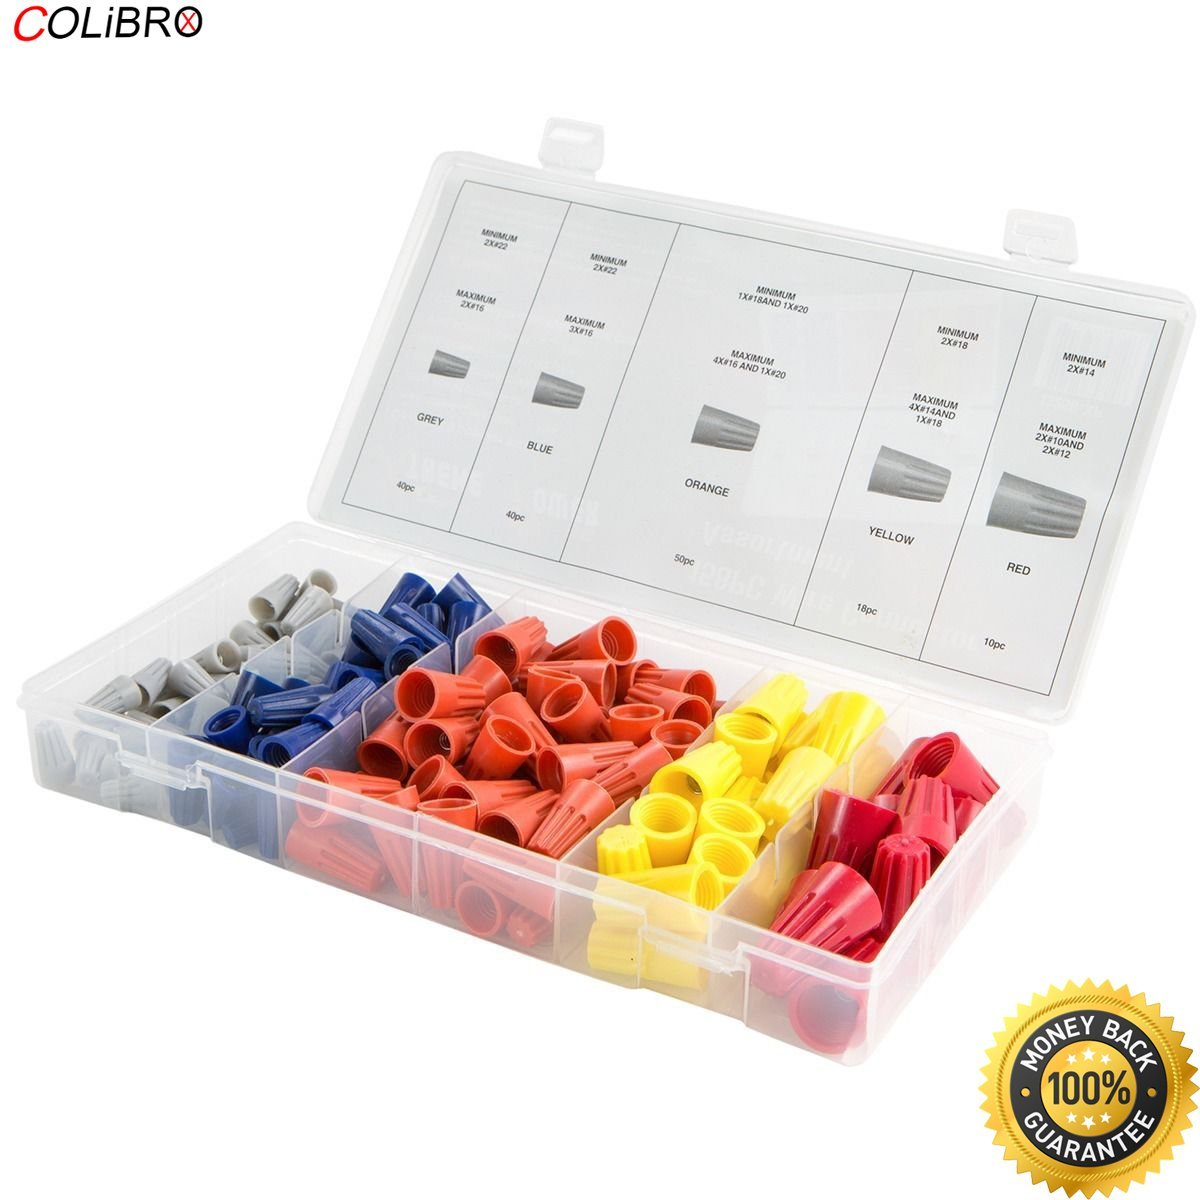 COLIBROX--New 158pc Electrical Wire Connector Cap w/ Spring Insert Assortment Electrical Wire Twist Connectors Nut Terminals Cap Spring Insert Assortment Electrical Wire Twist Nut